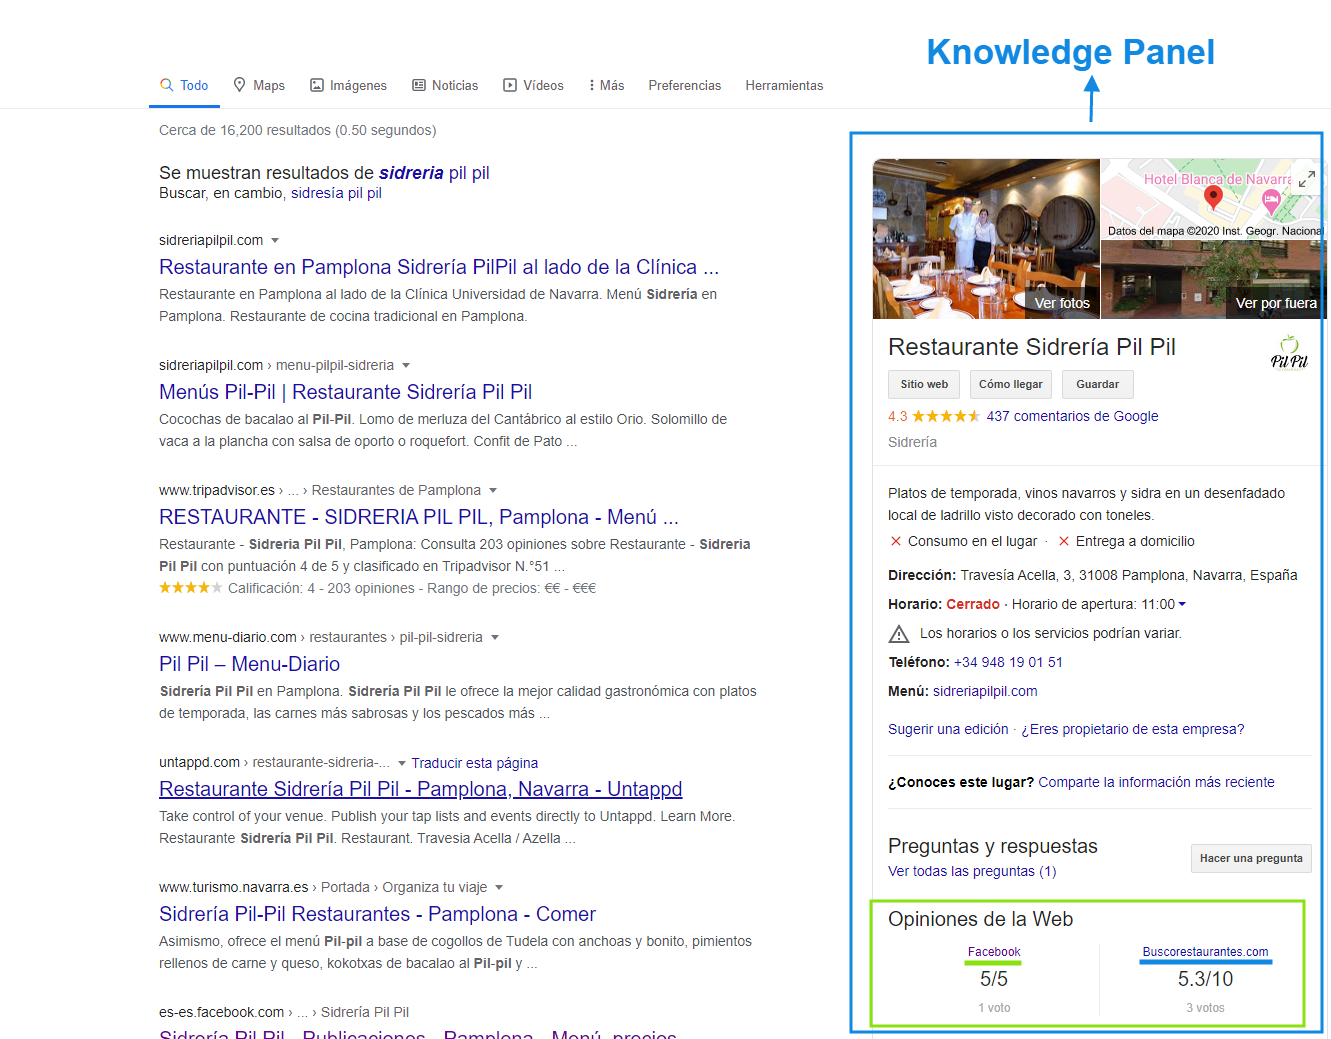 Knowledge Panel Reseñas